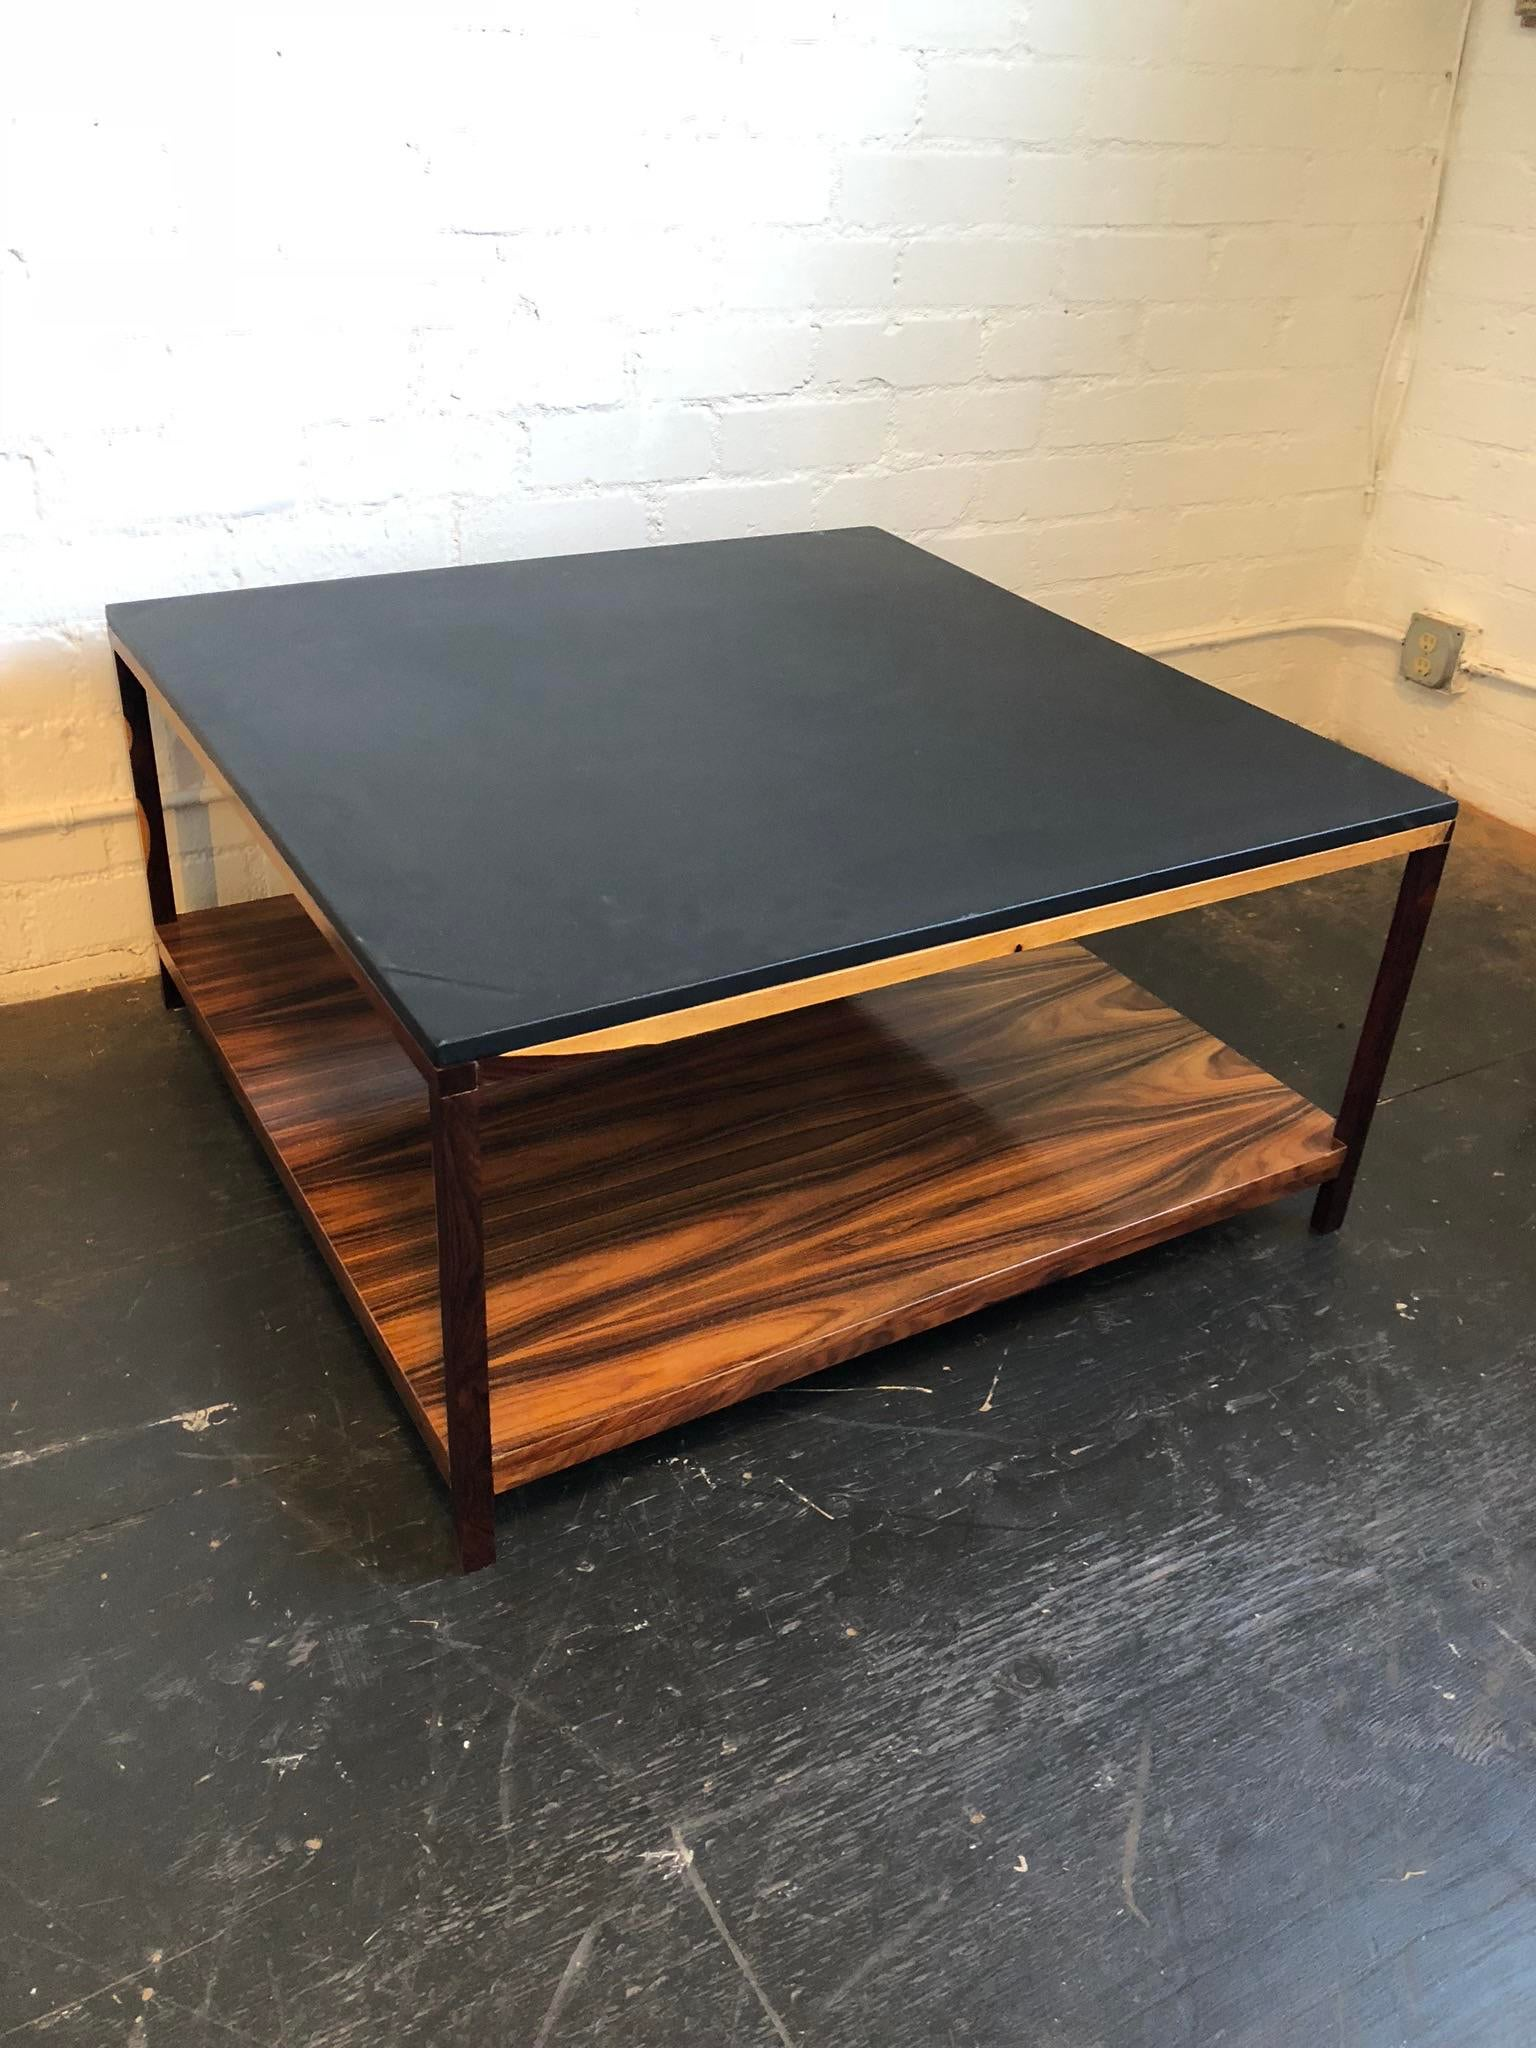 Stunning Two Tiered Mid Century Zebra Wood And Black Faux Leather Top Coffee  Table.